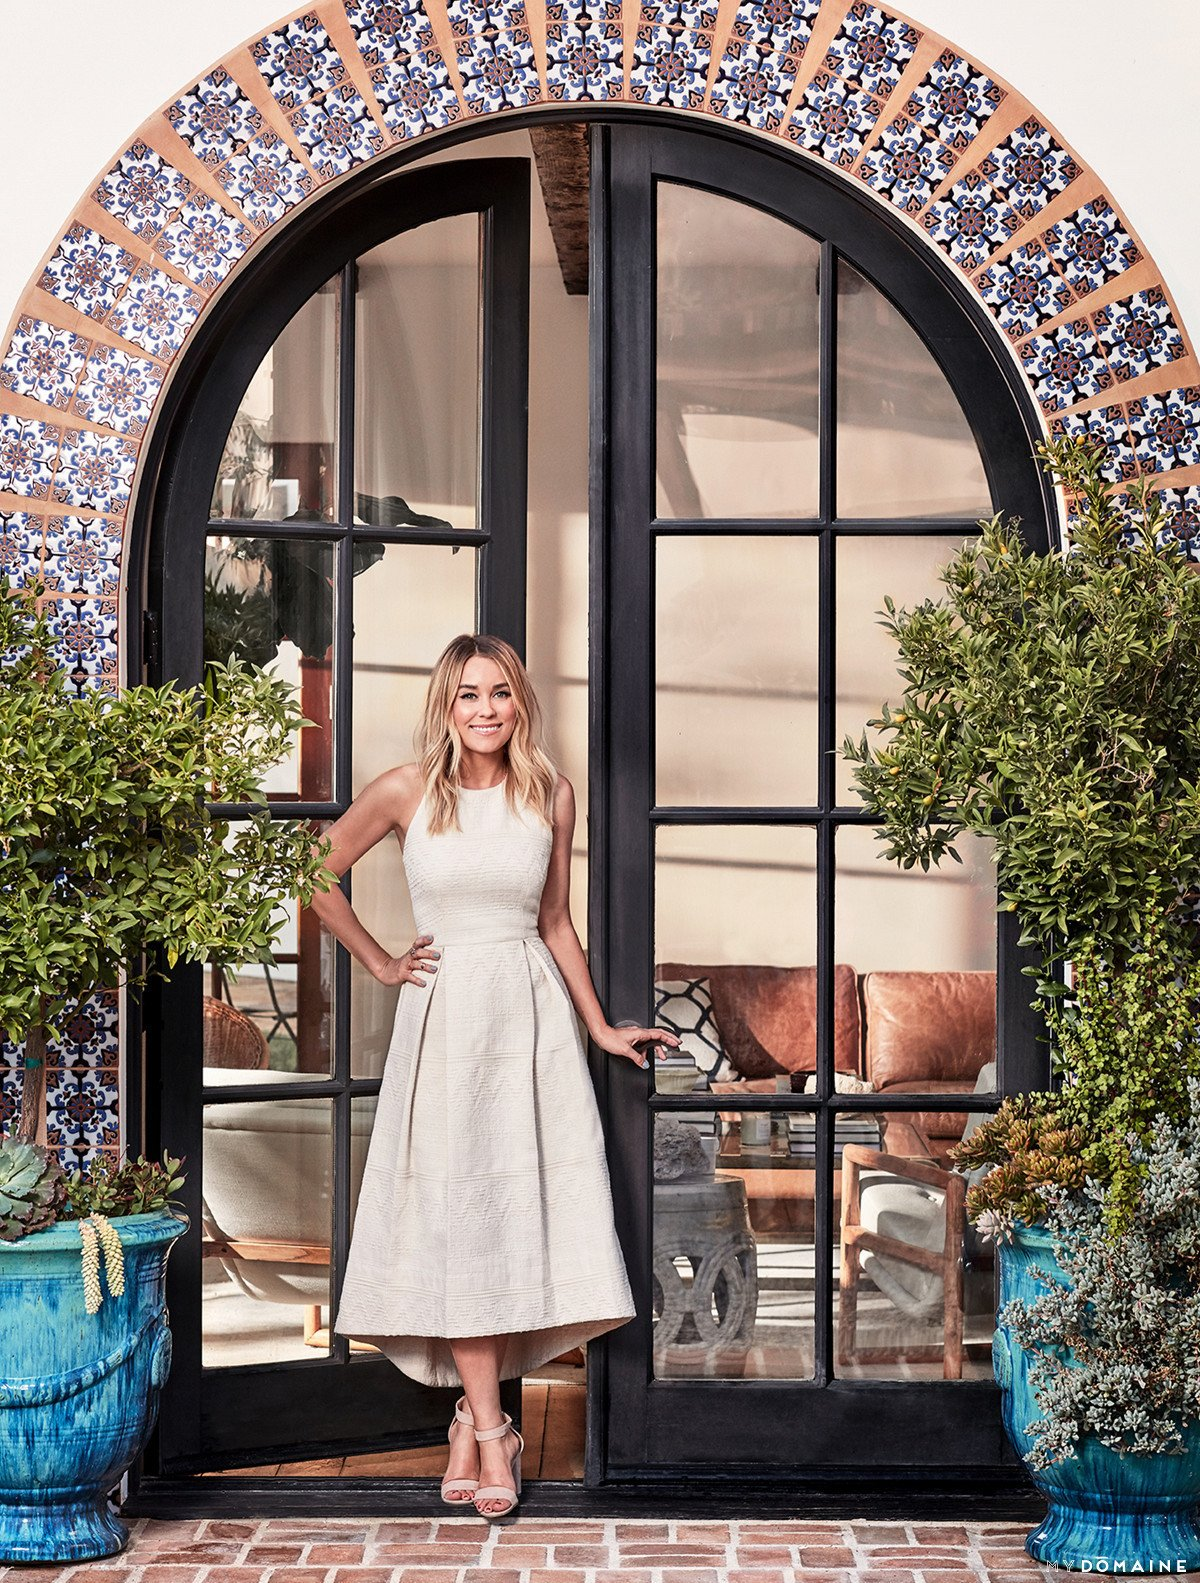 Photo 24 of 24 in Tour Lauren Conrad's Elegant, Light-Filled Home in the Pacific Palisades